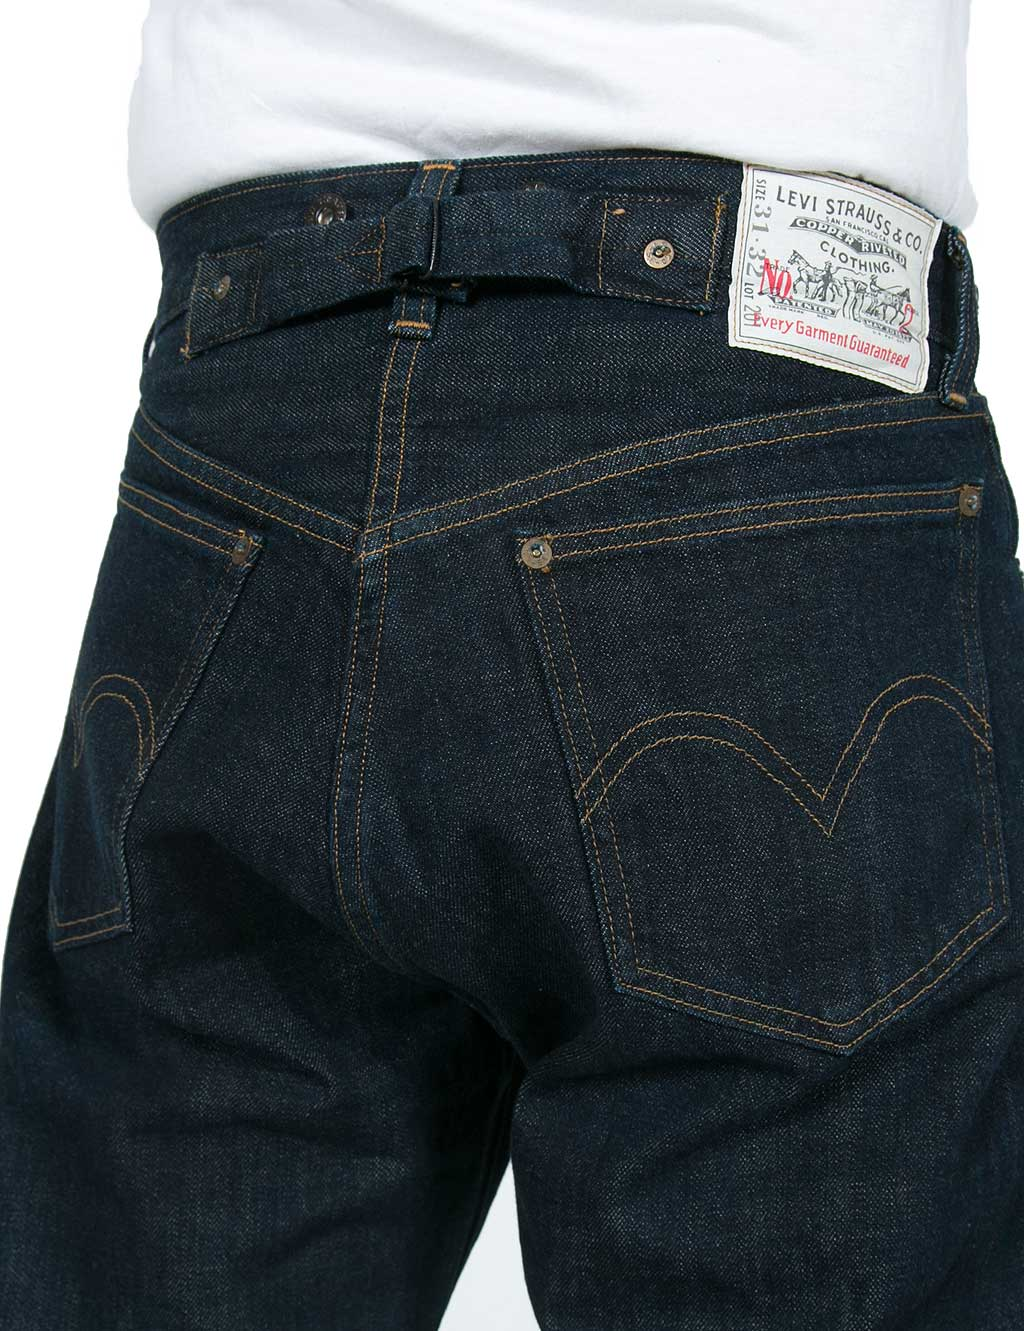 Jeans Levi´s Vintage Selvage Rinsed 201 Clothing 1920´s w1AqI16